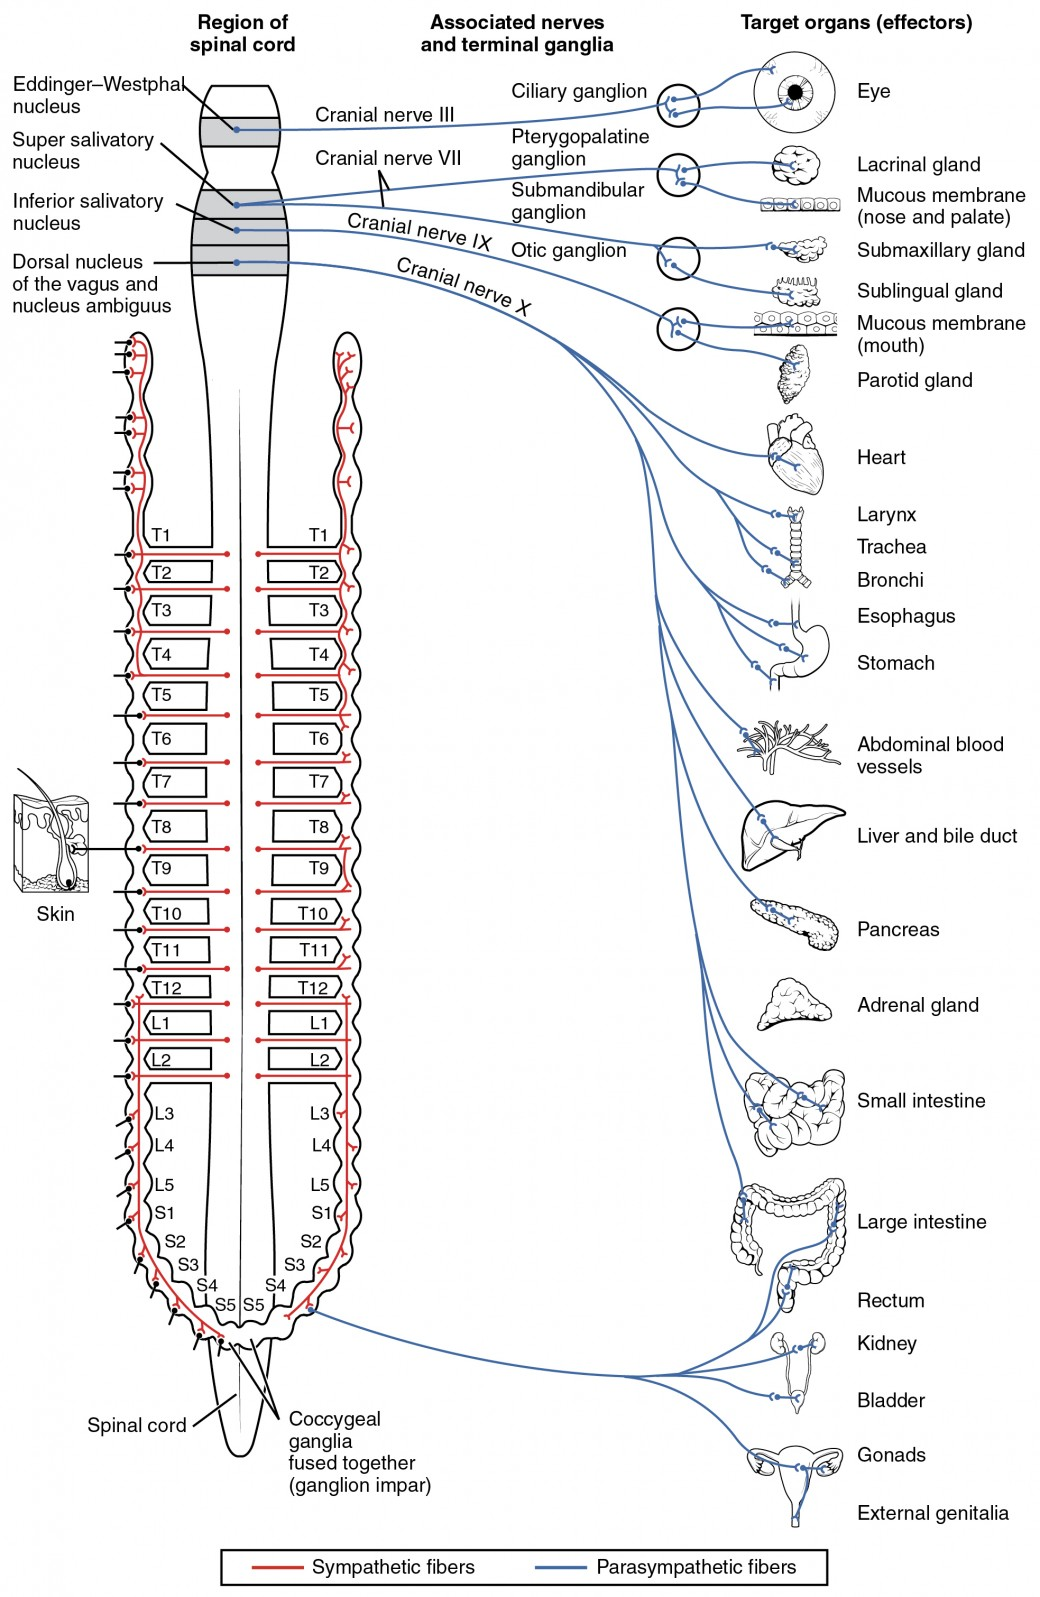 worksheet Central Nervous System Worksheet divisions of the autonomic nervous system anatomy and physiology i this diagram shows spinal cord has different central nerves emerging from it the